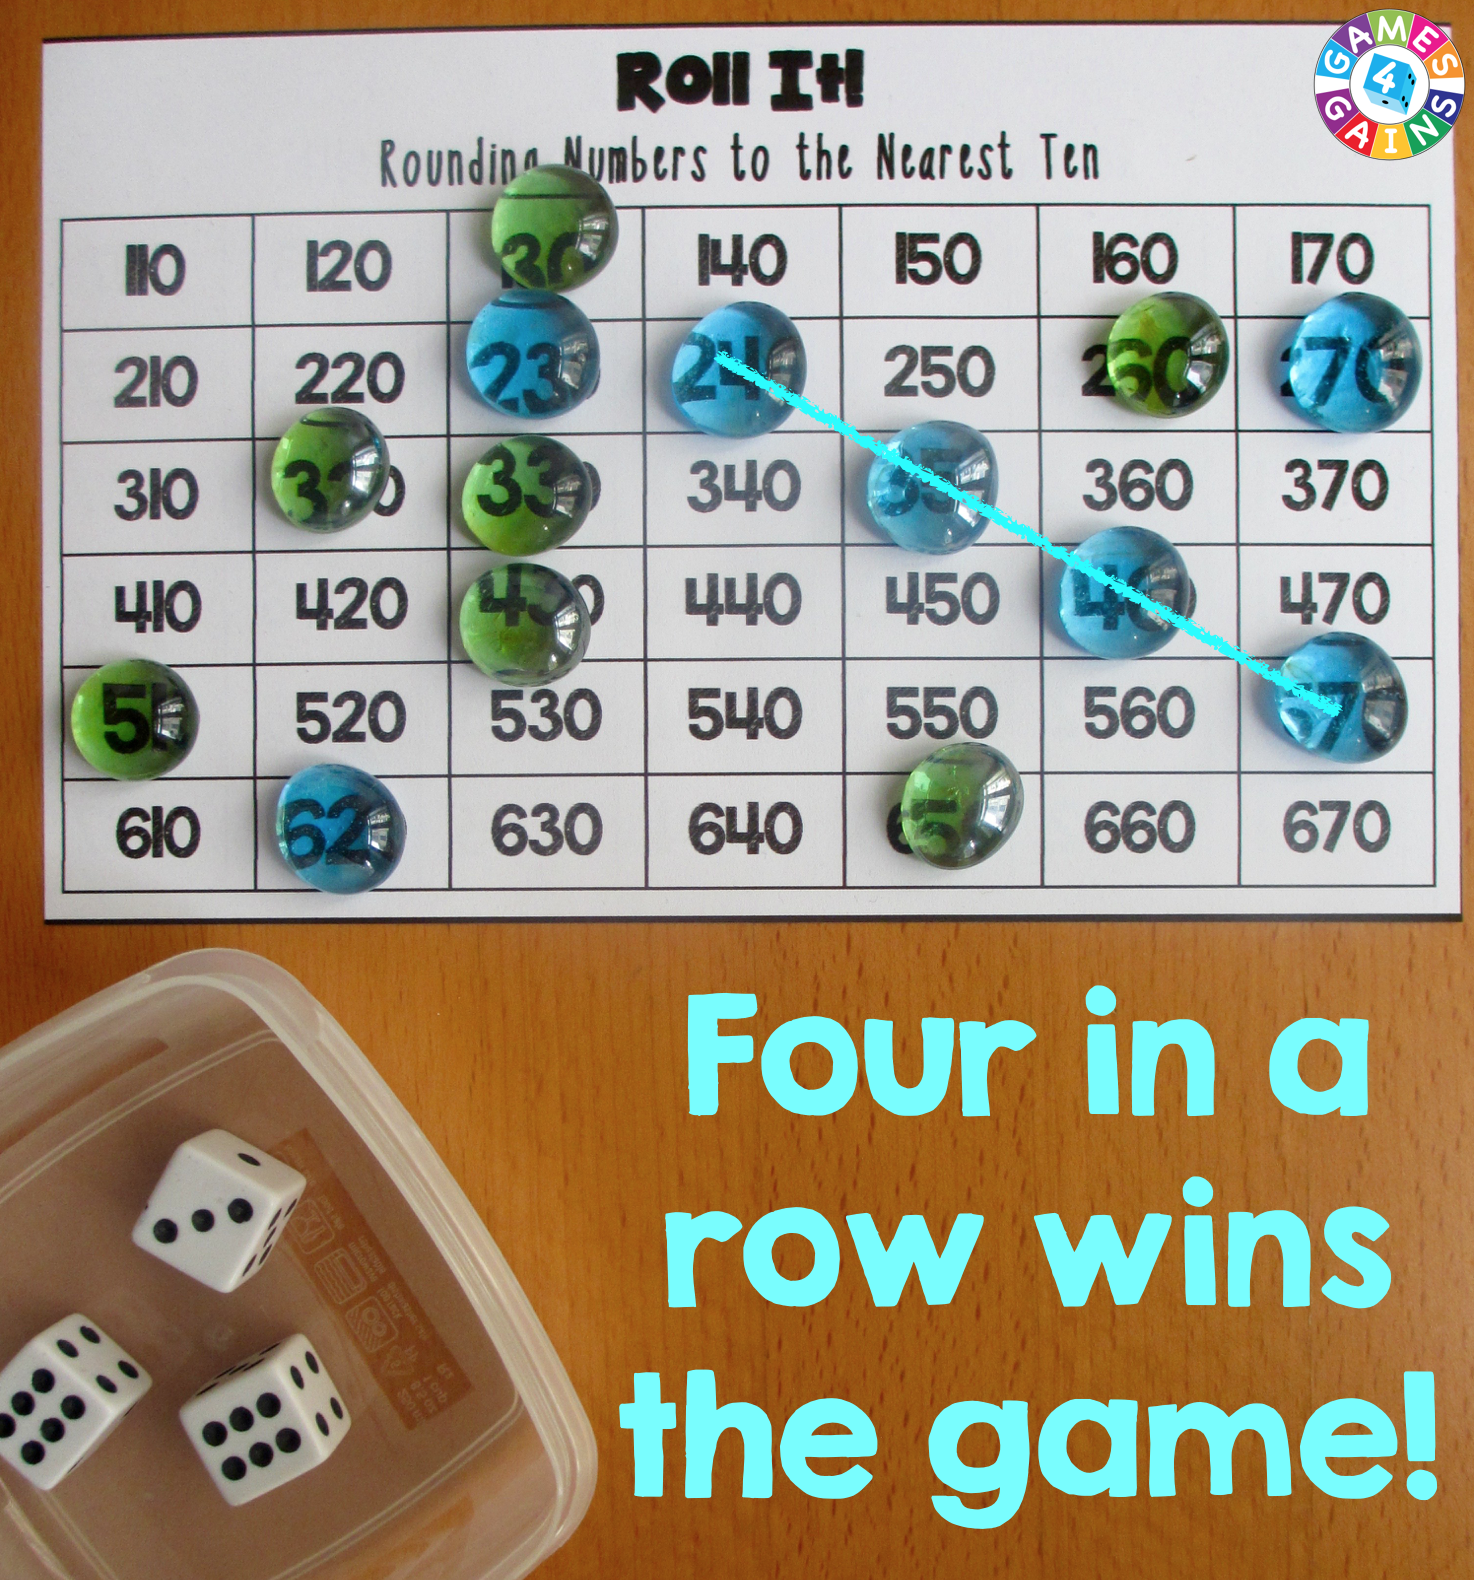 Roll It! Rounding Game | Pinterest | Mathe